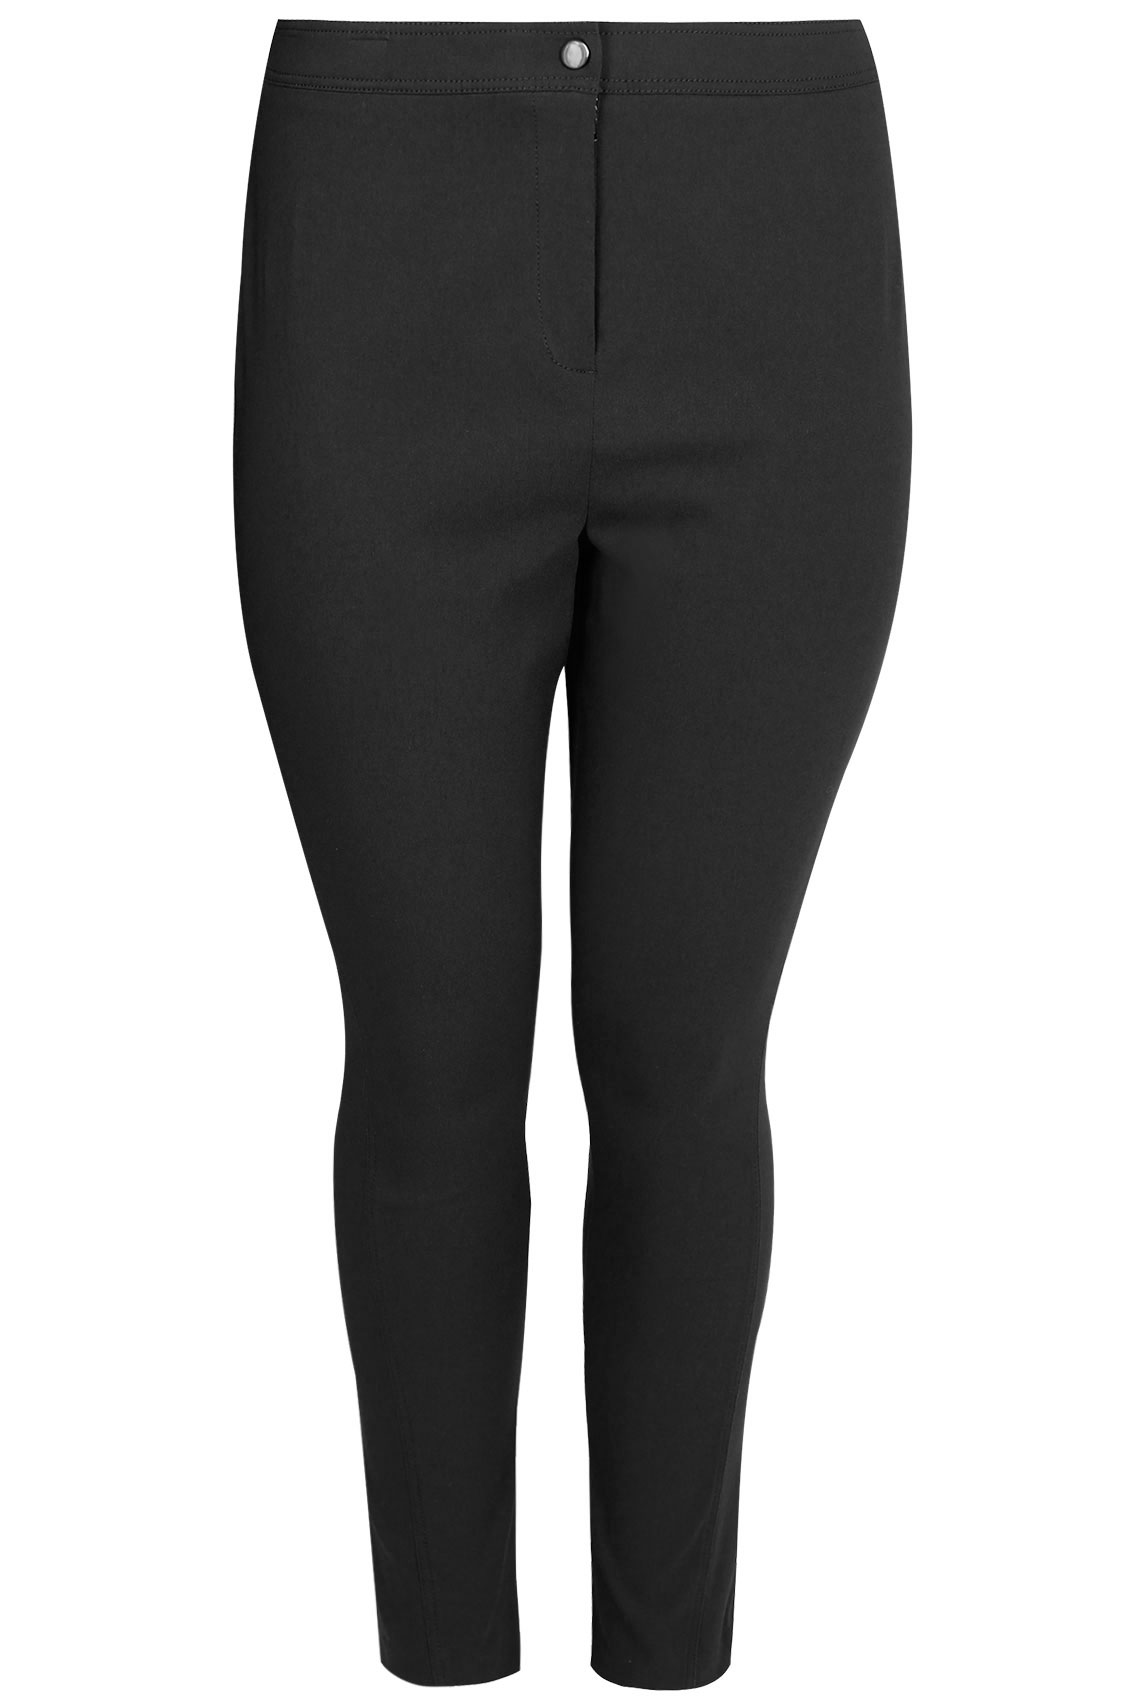 Find great deals on eBay for black stretch pants. Shop with confidence.